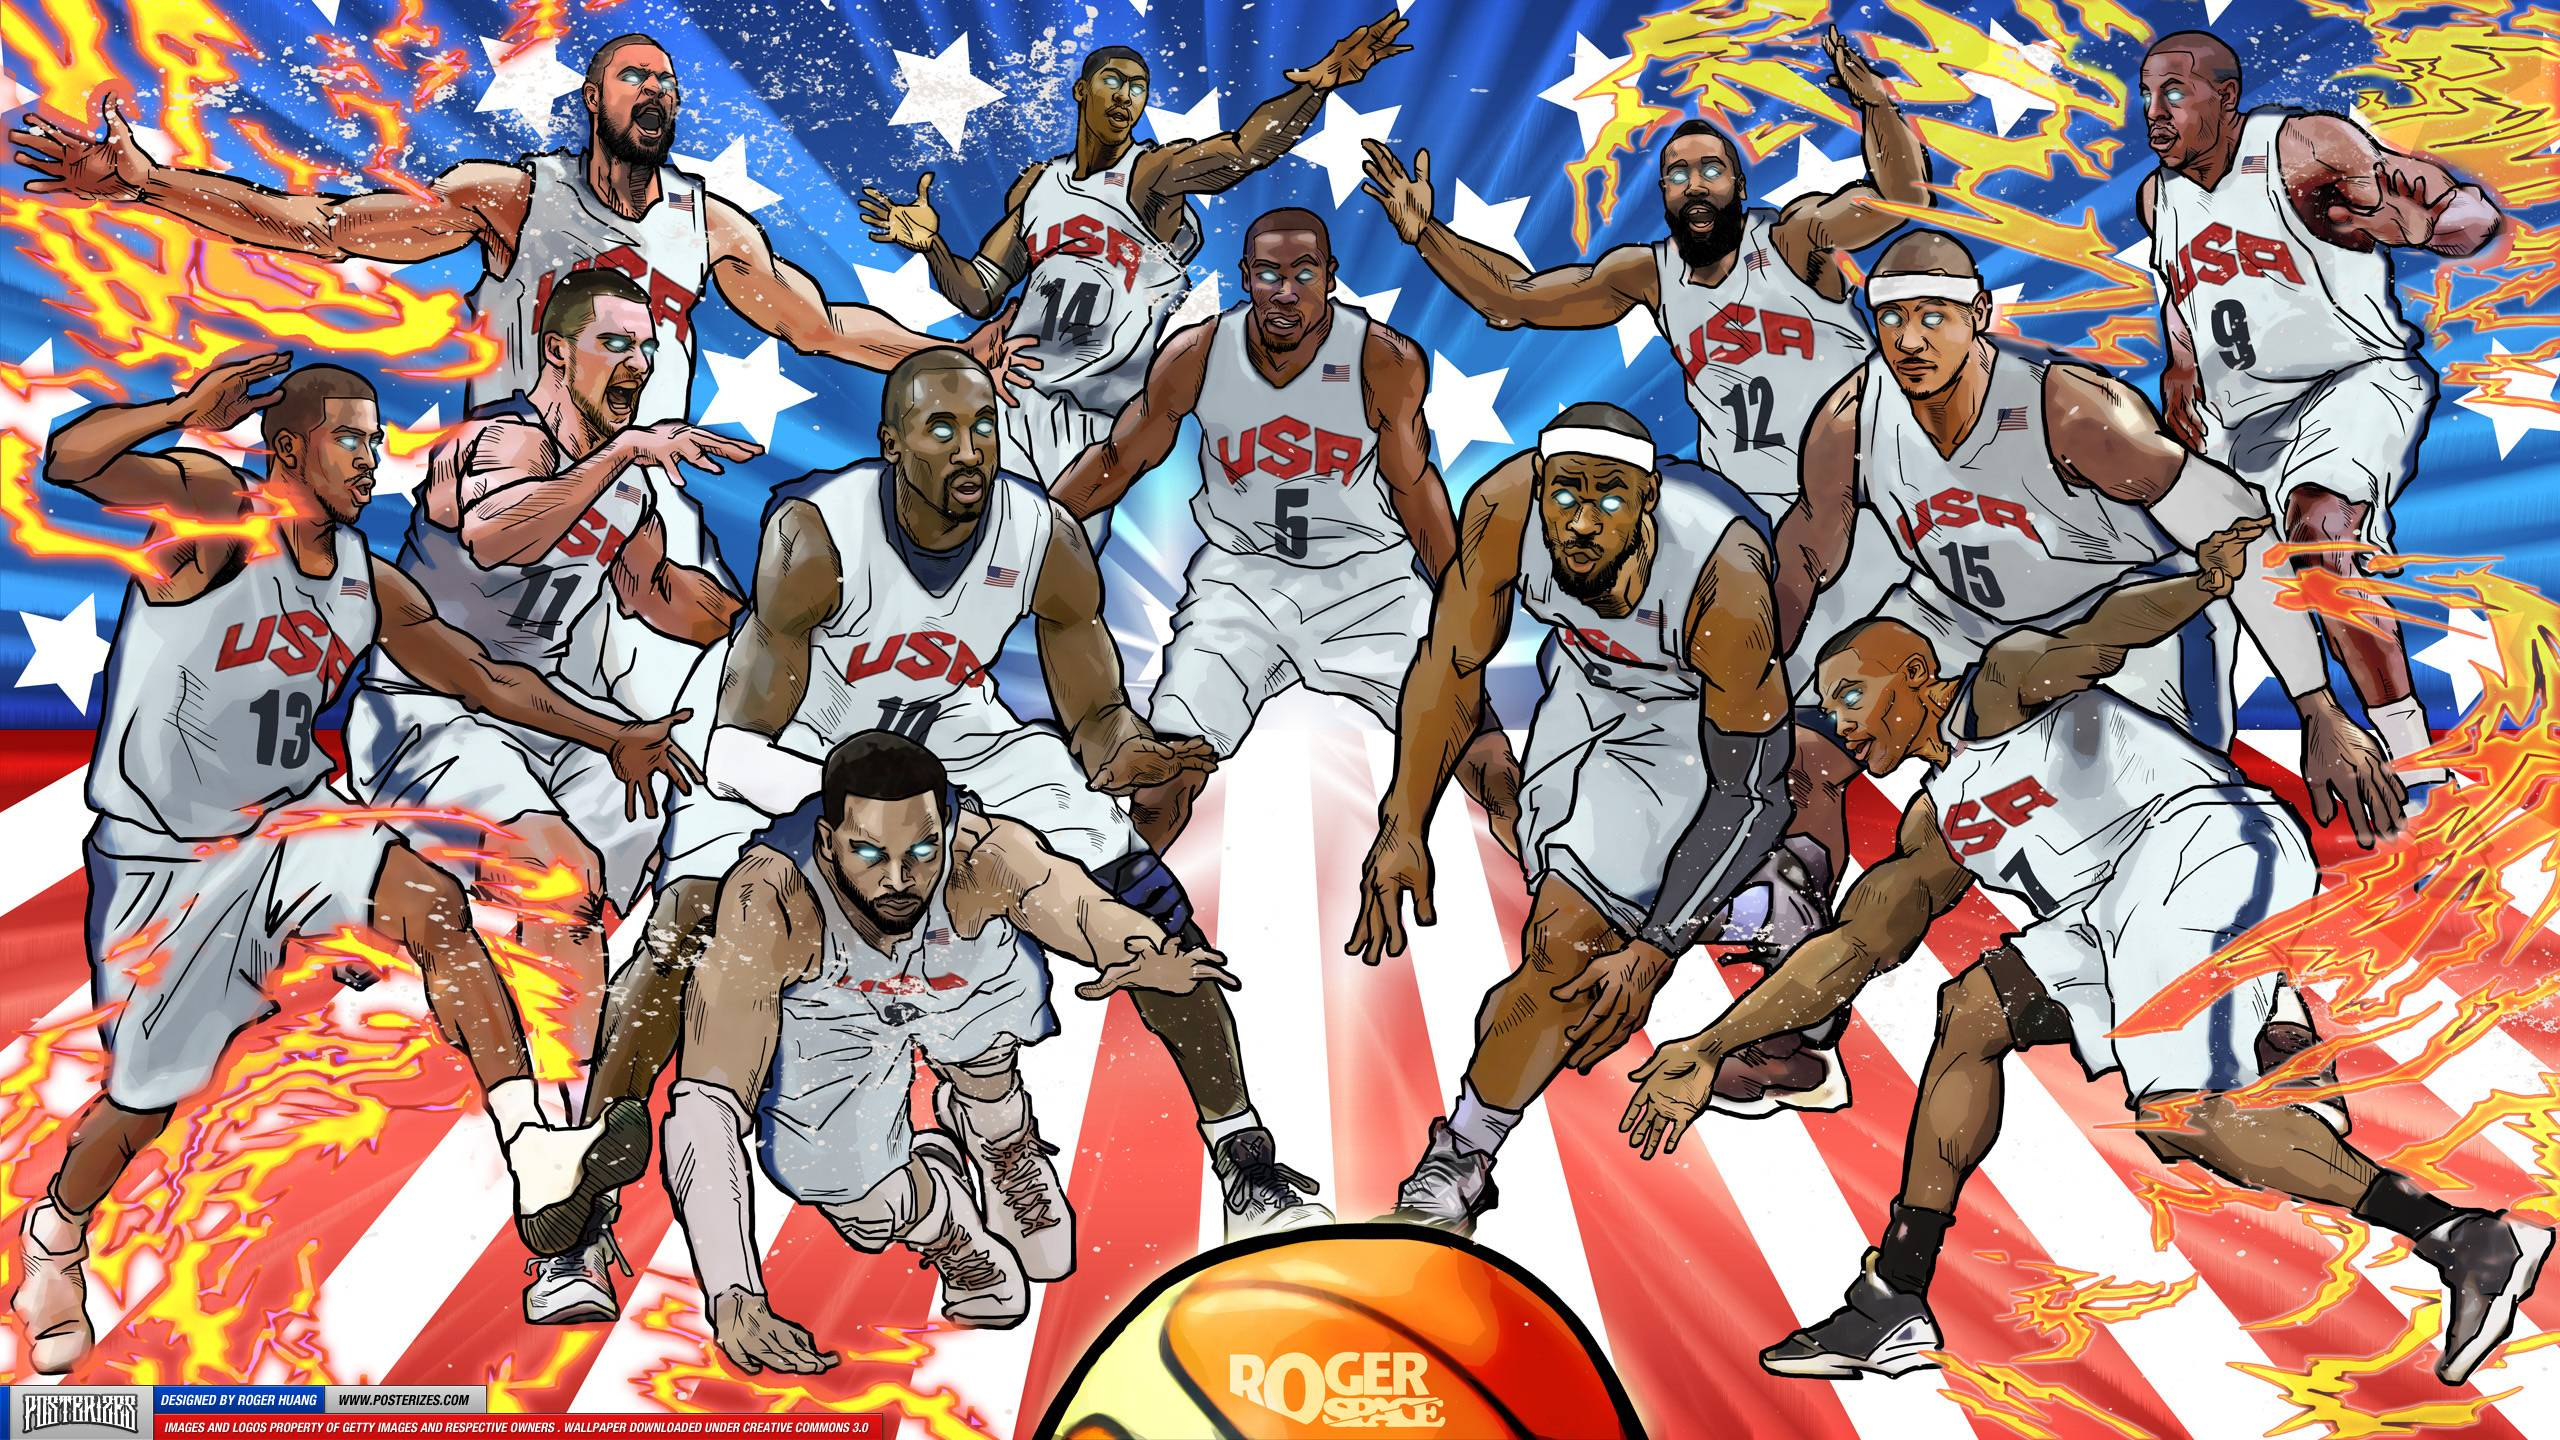 Basketball Cartoon Wallpapers: Nba Wallpapers 2015 New